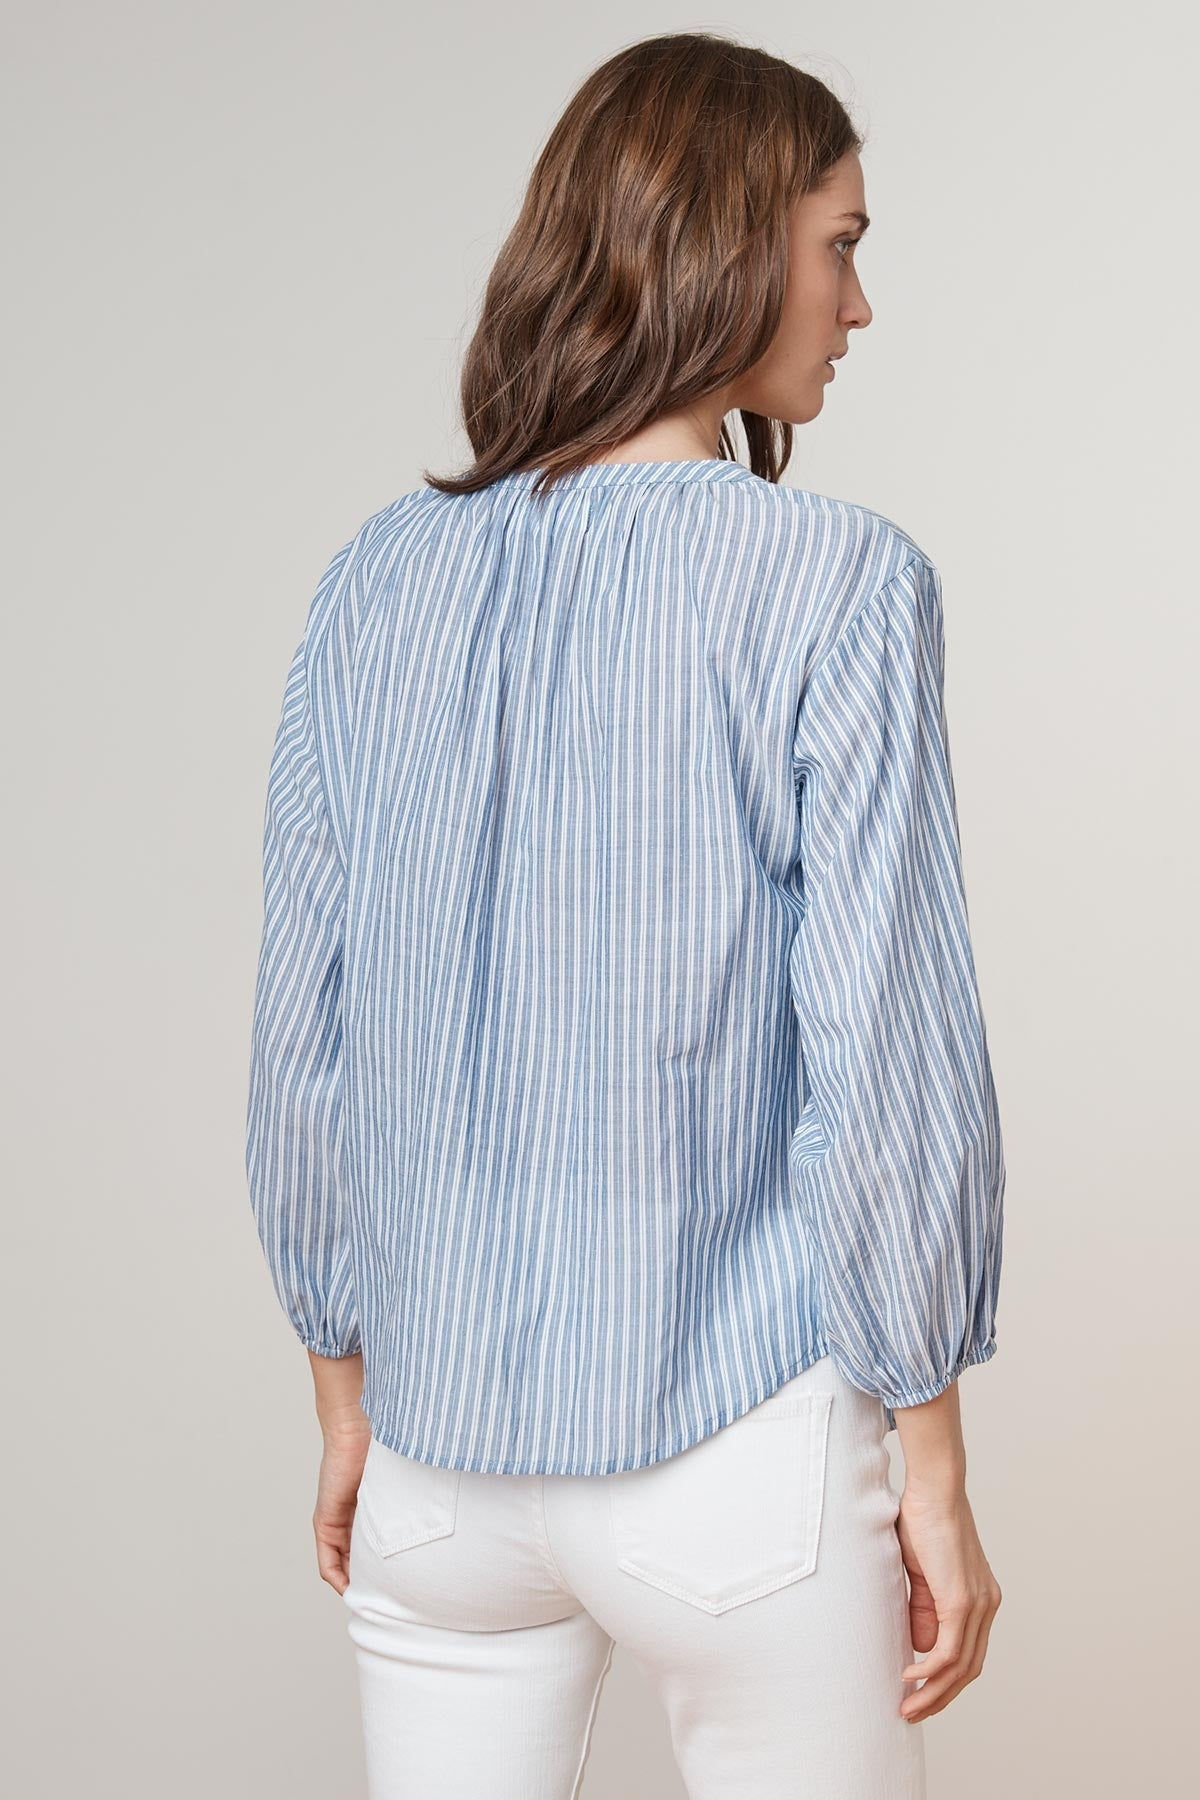 KIMO PINSTRIPE BUTTON UP SHIRT